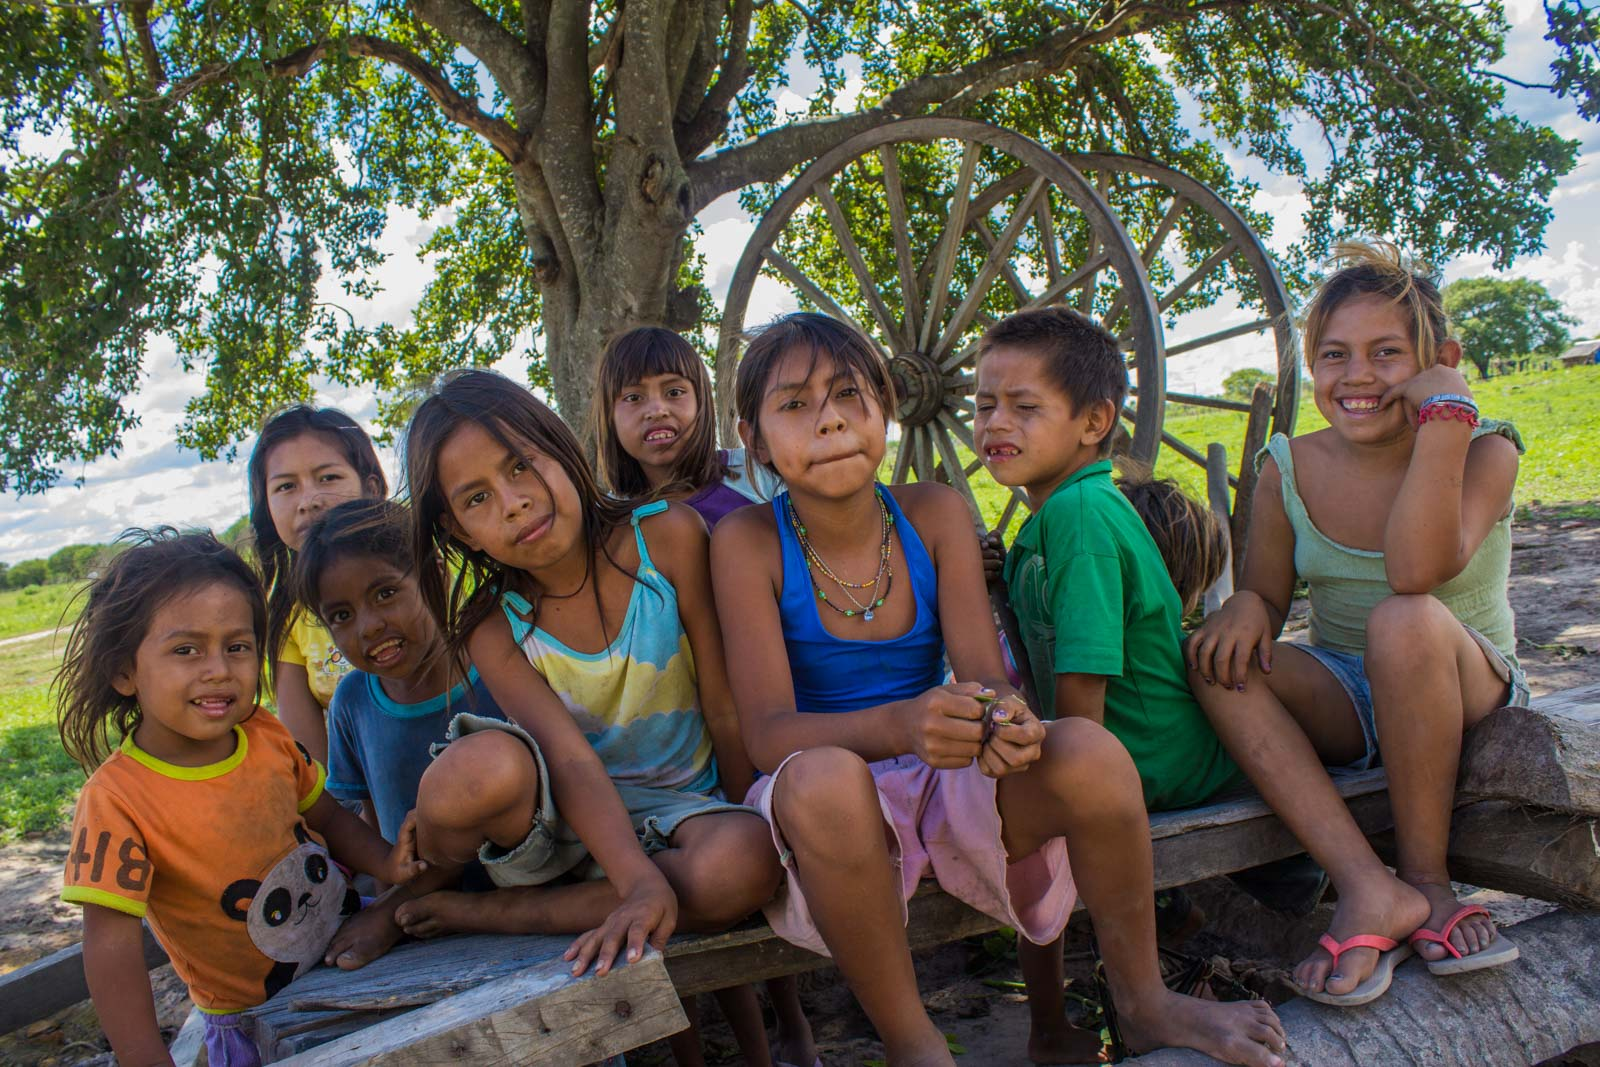 paraguay indigenous native tribes survival international near concepcion